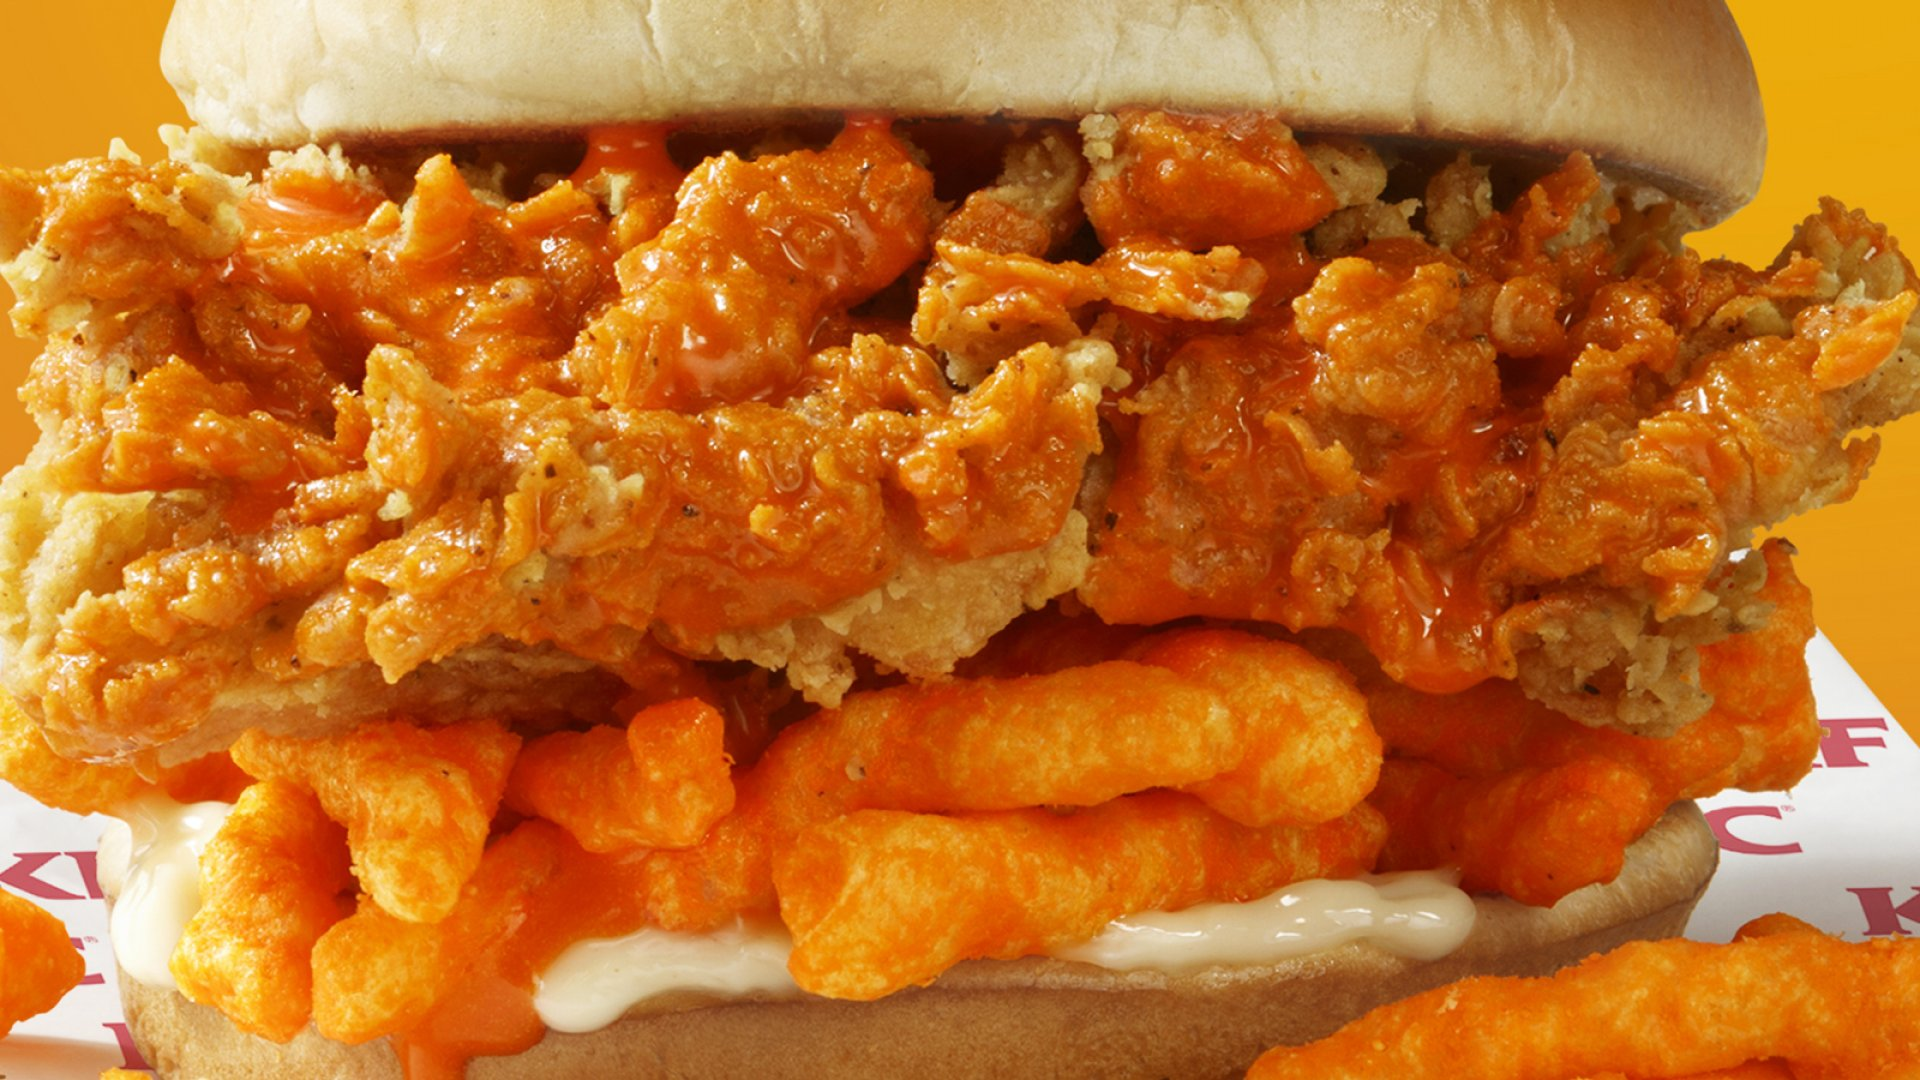 Cheetos in a Chicken Sandwich? Once Again, KFC Shows How PR Is Done Right